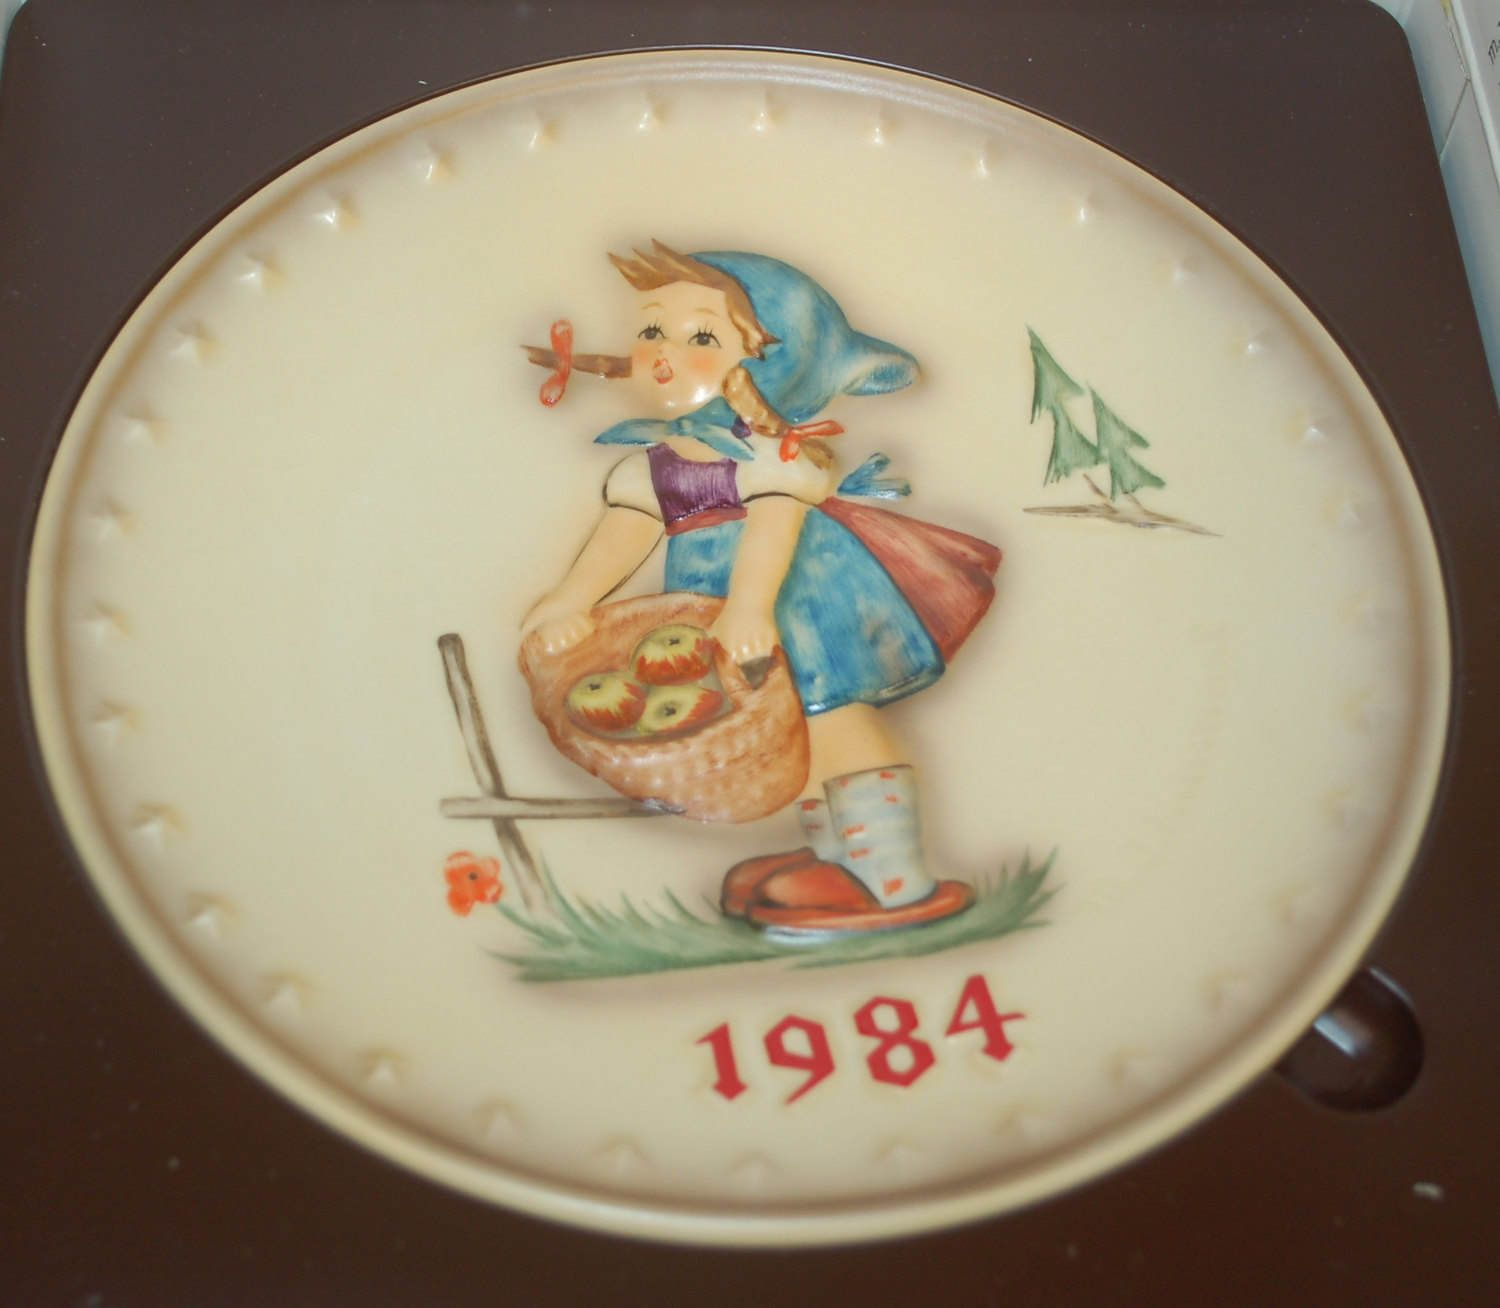 1984 hummel plate by creativetouchwi on etsy